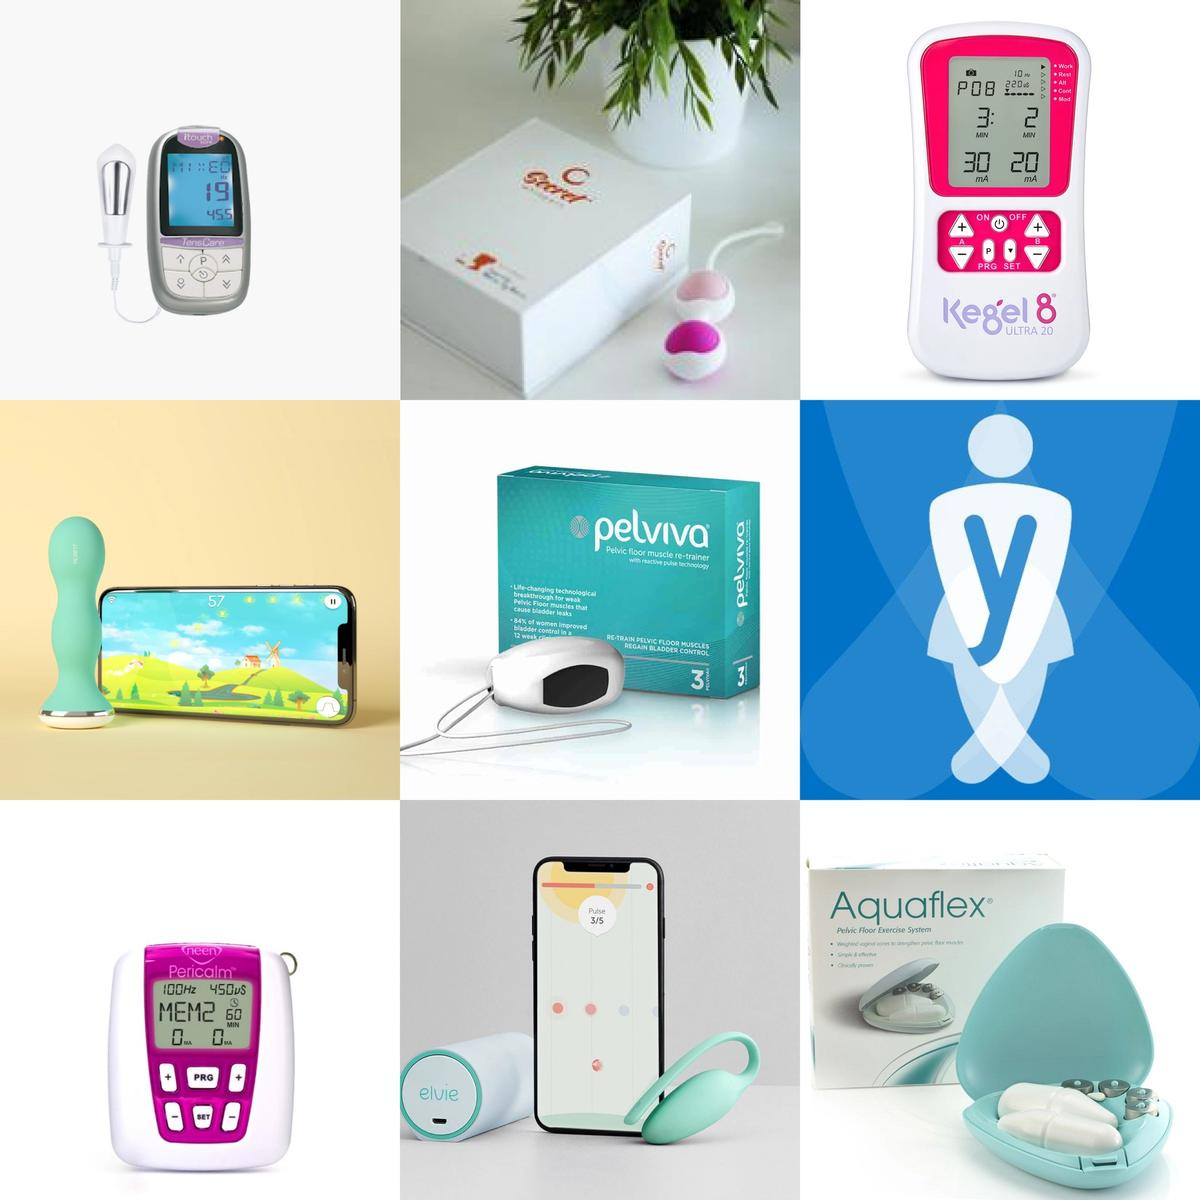 Images of various pelvic floor gadgets